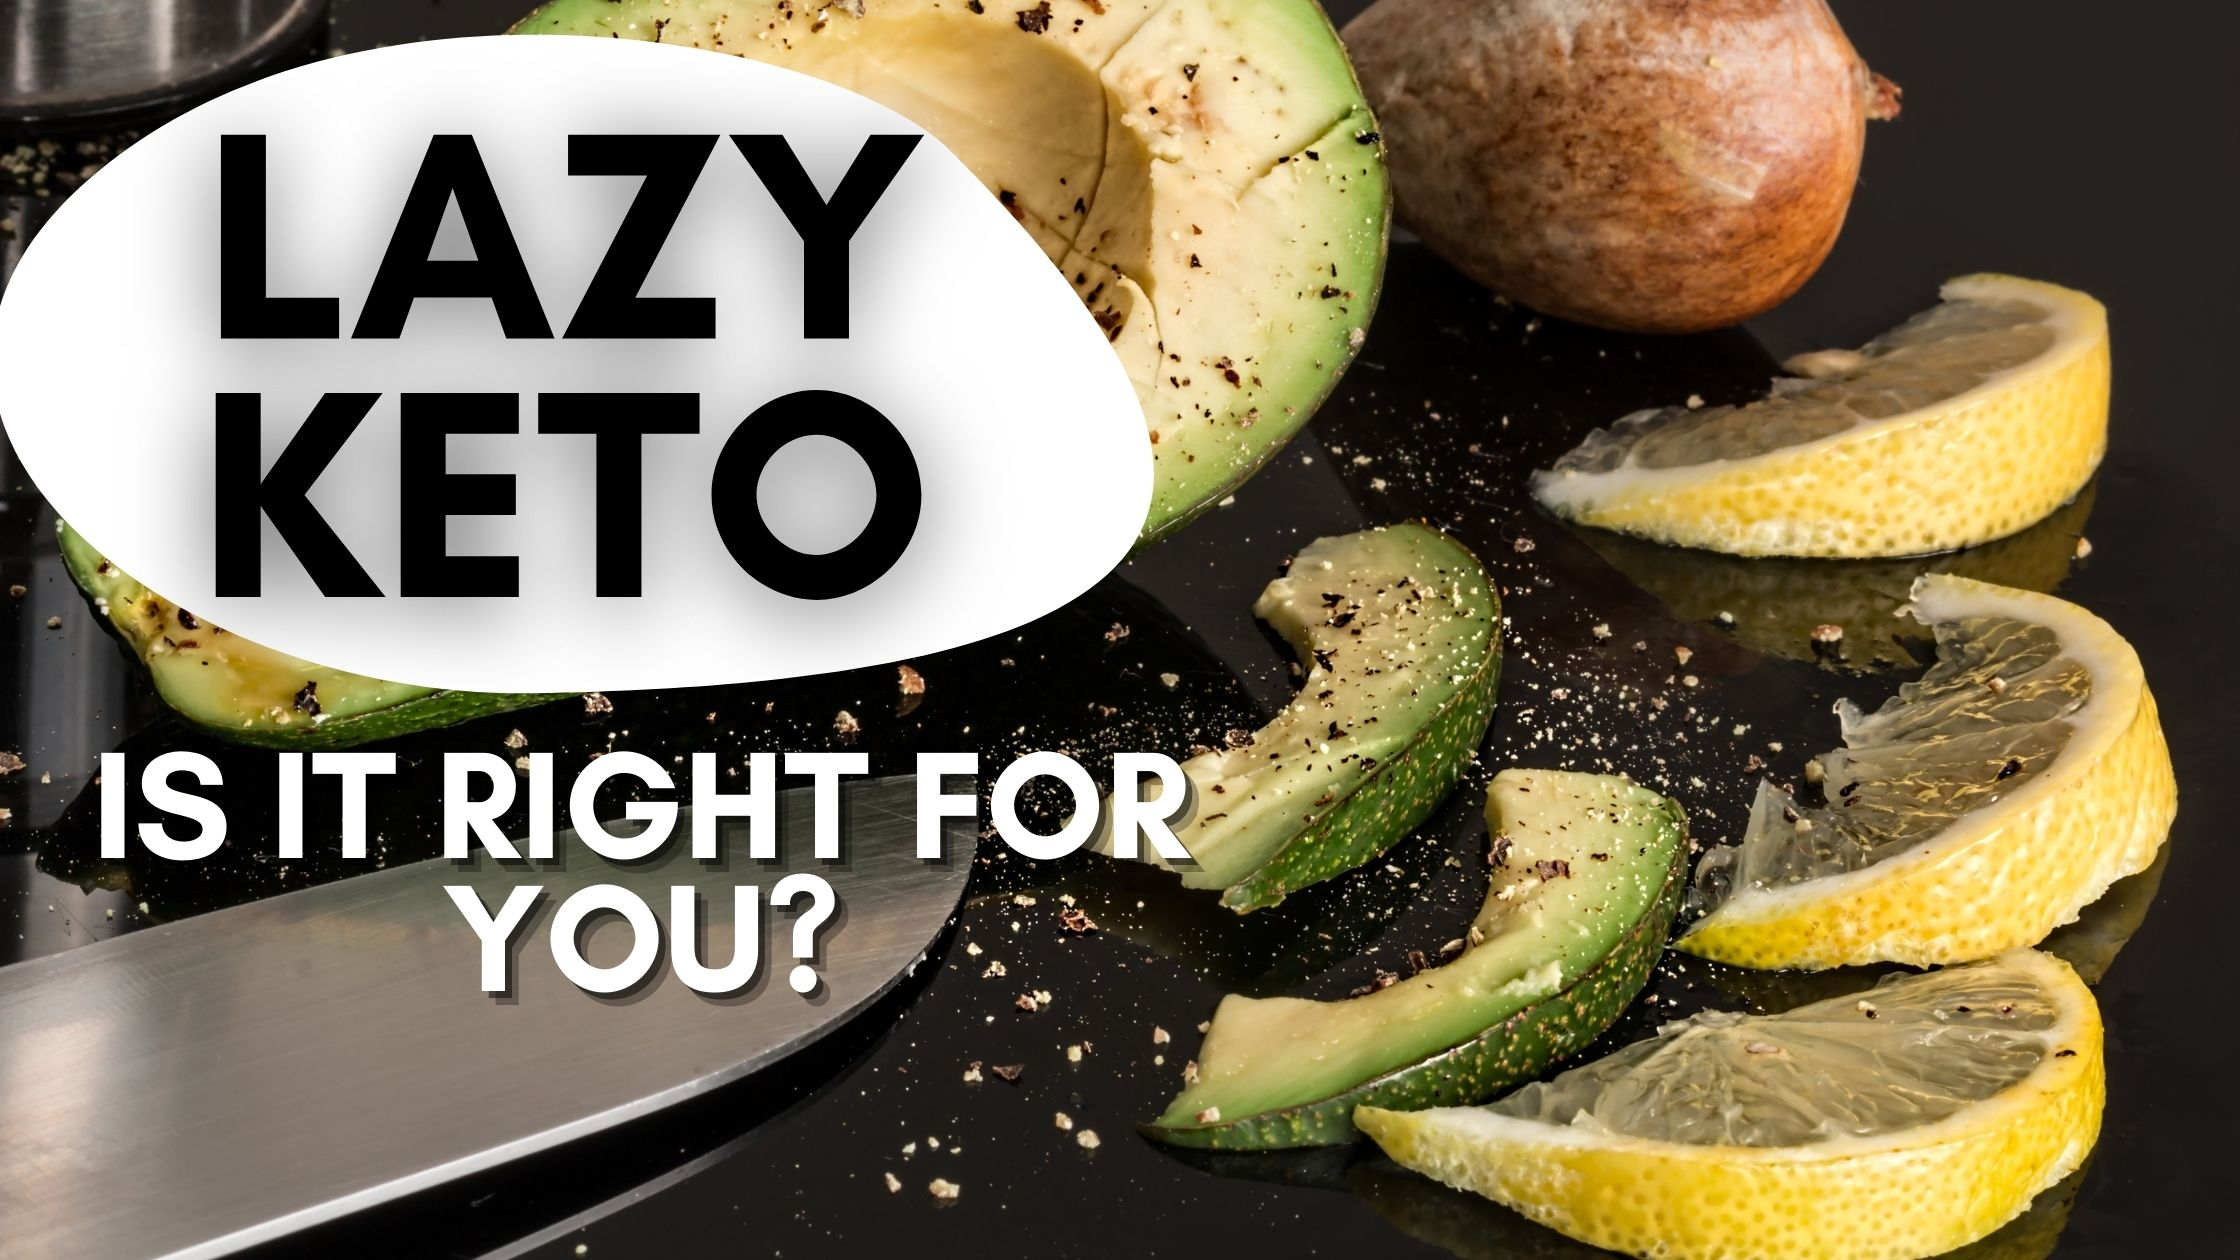 What is Lazy Keto? is it right for you?